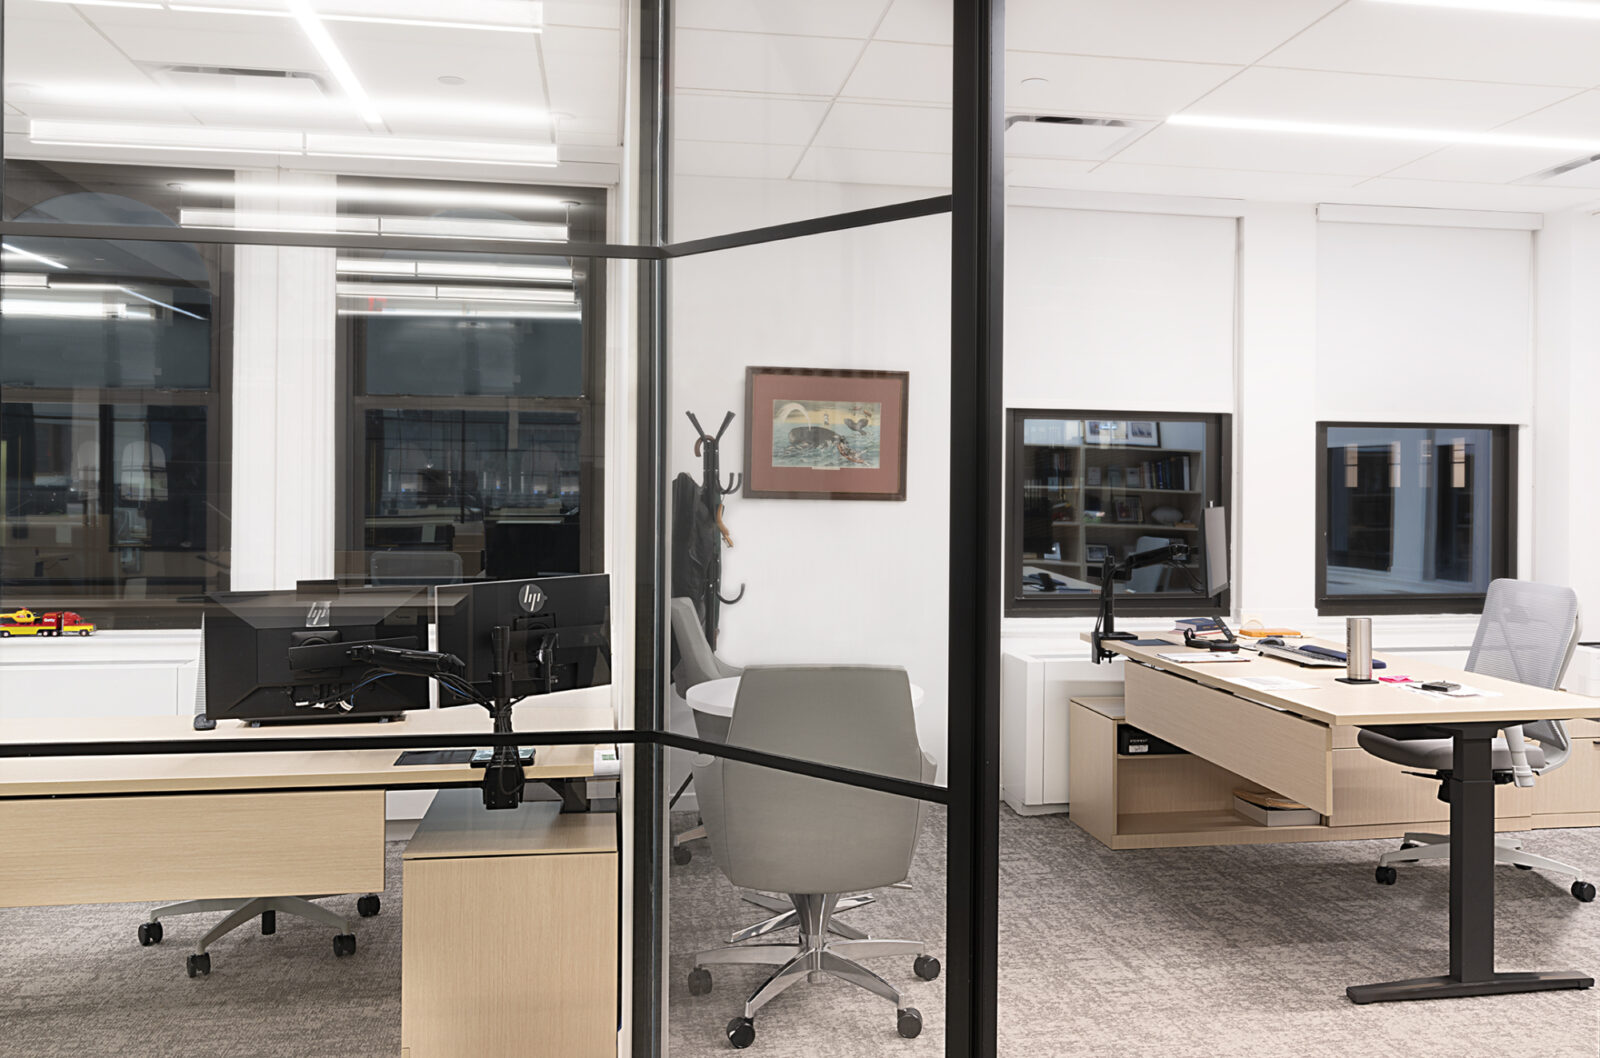 NYC Commercial private offices Herman Miller casegoods Creative Office Pavilion NYC Workplace